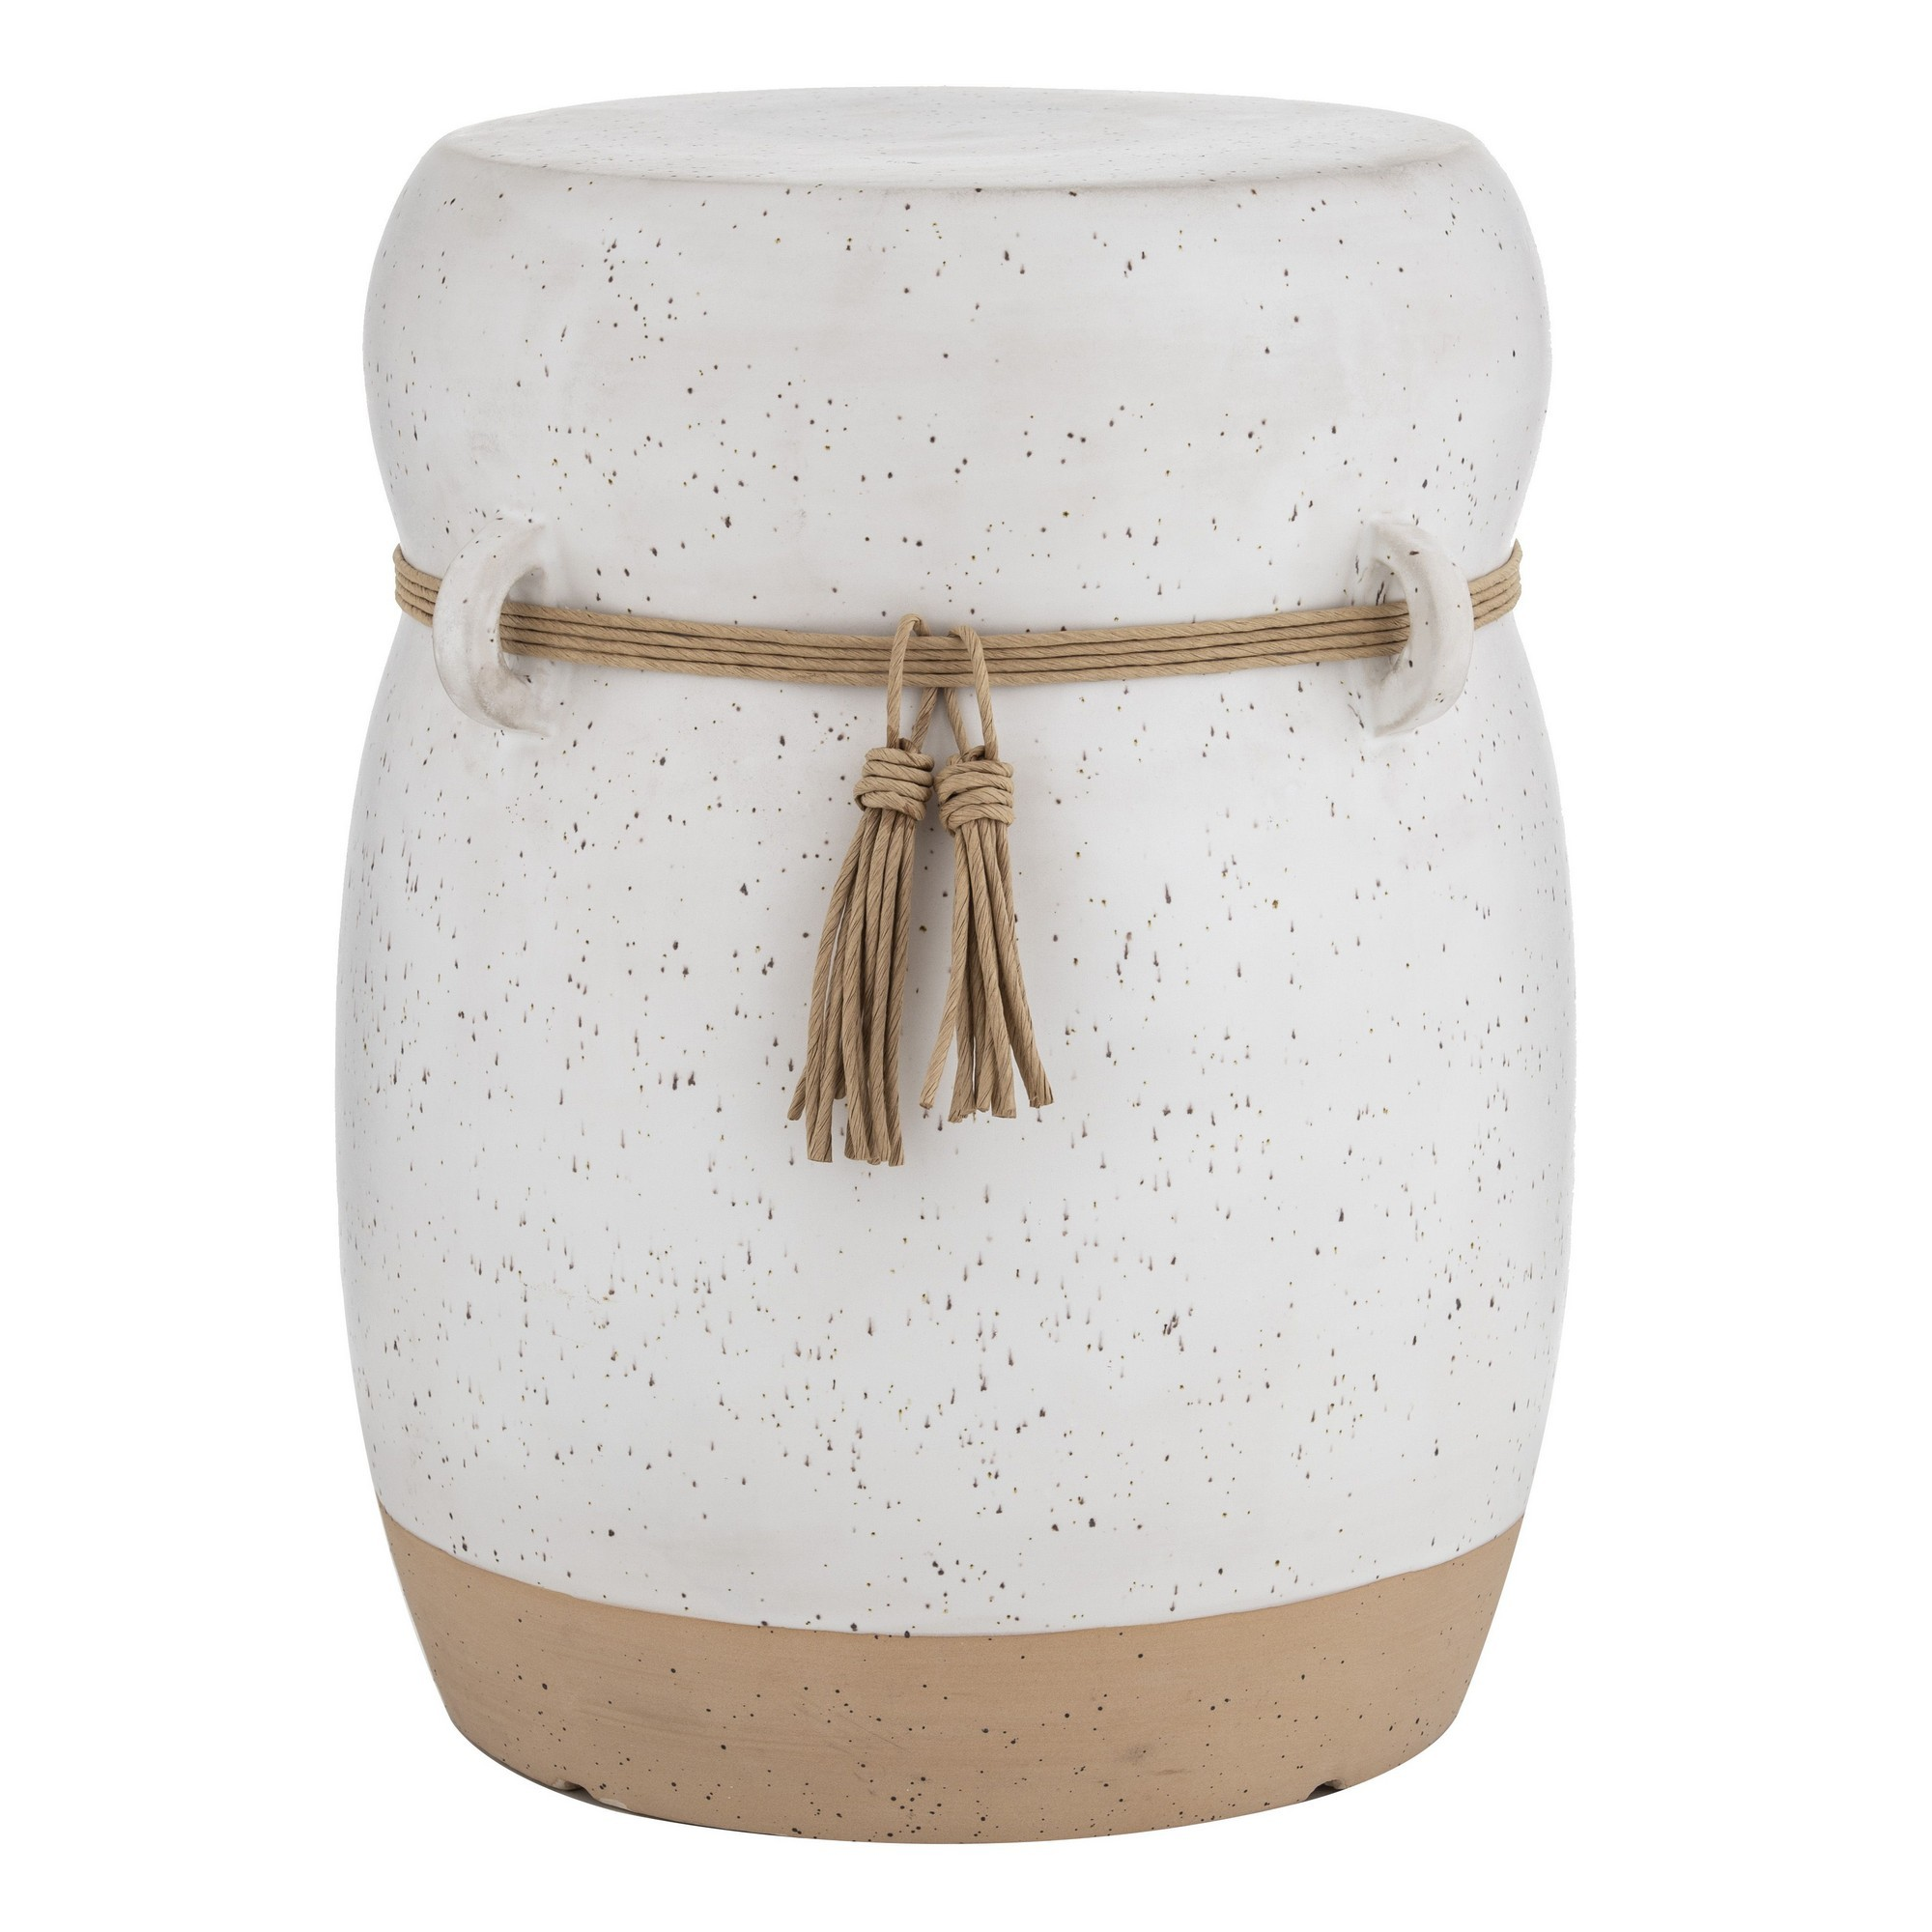 Mani Ceramic Side Table / Drum Stool